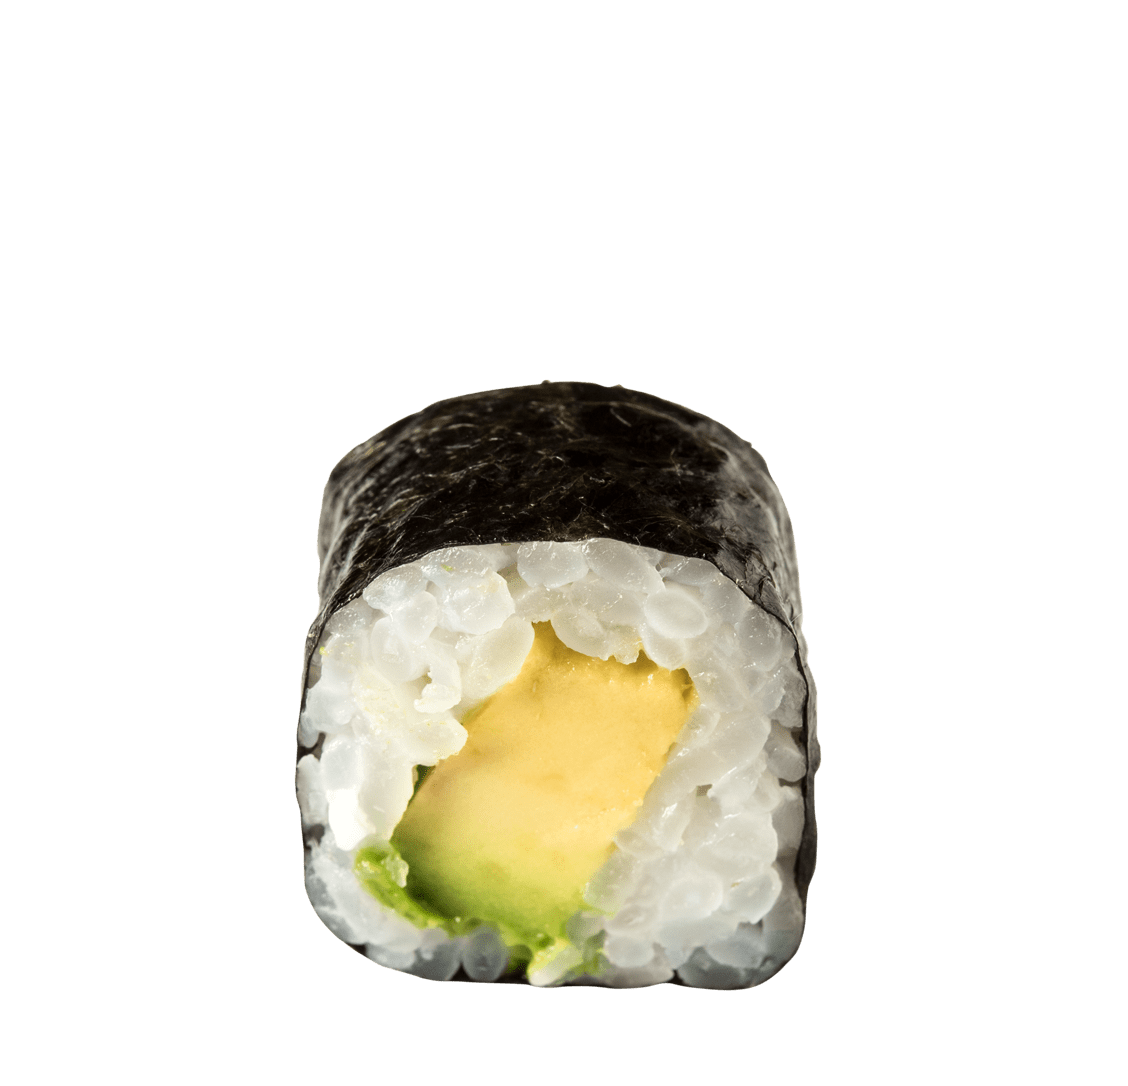 Avocado Maki</br>5,50 € title=Avocado Maki</br>5,50 €